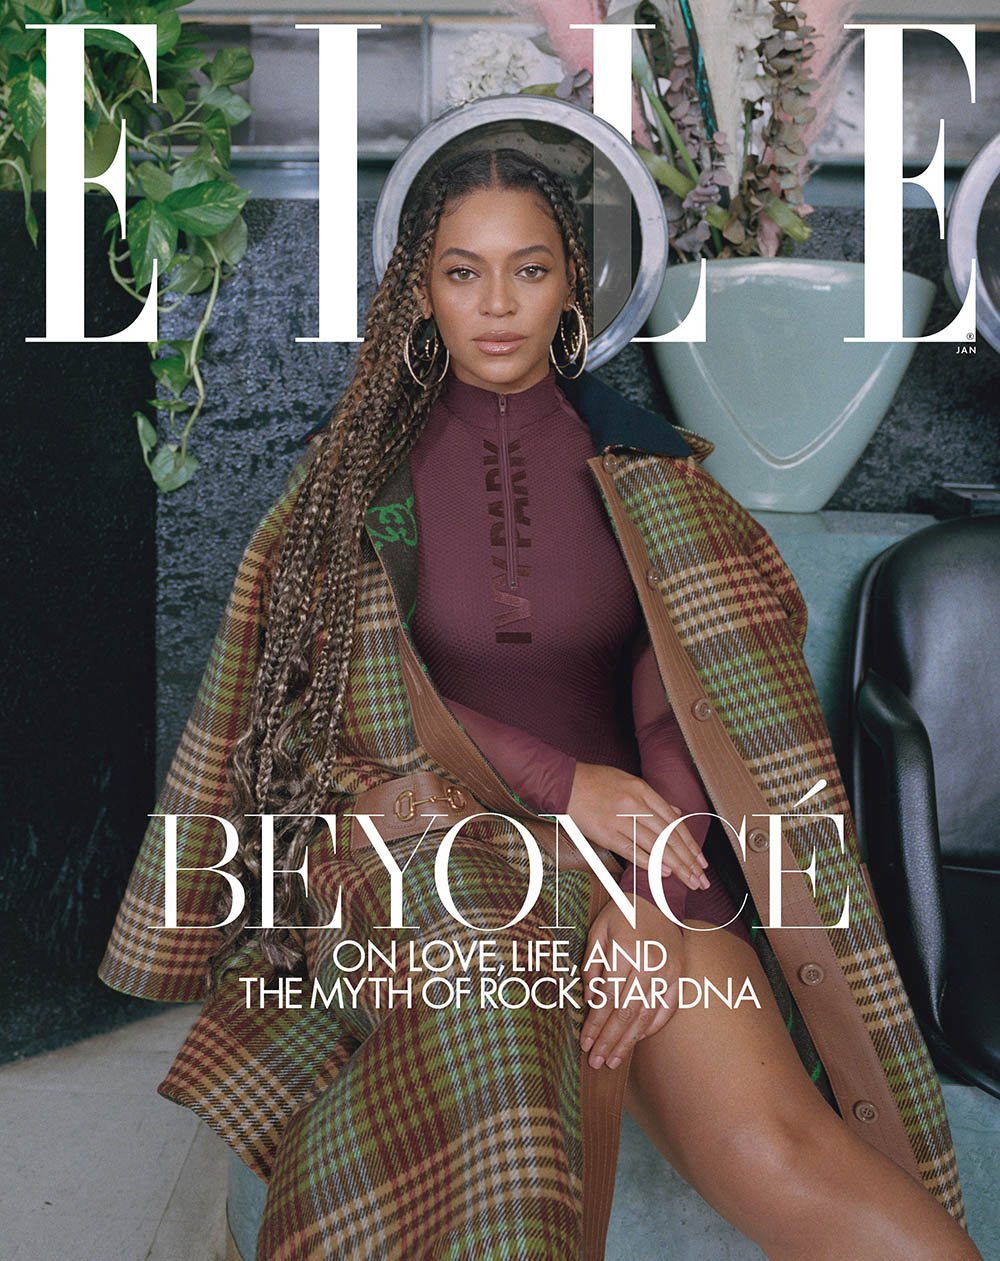 Beyoncé covers Elle US January 2020 by Melina Matsoukas